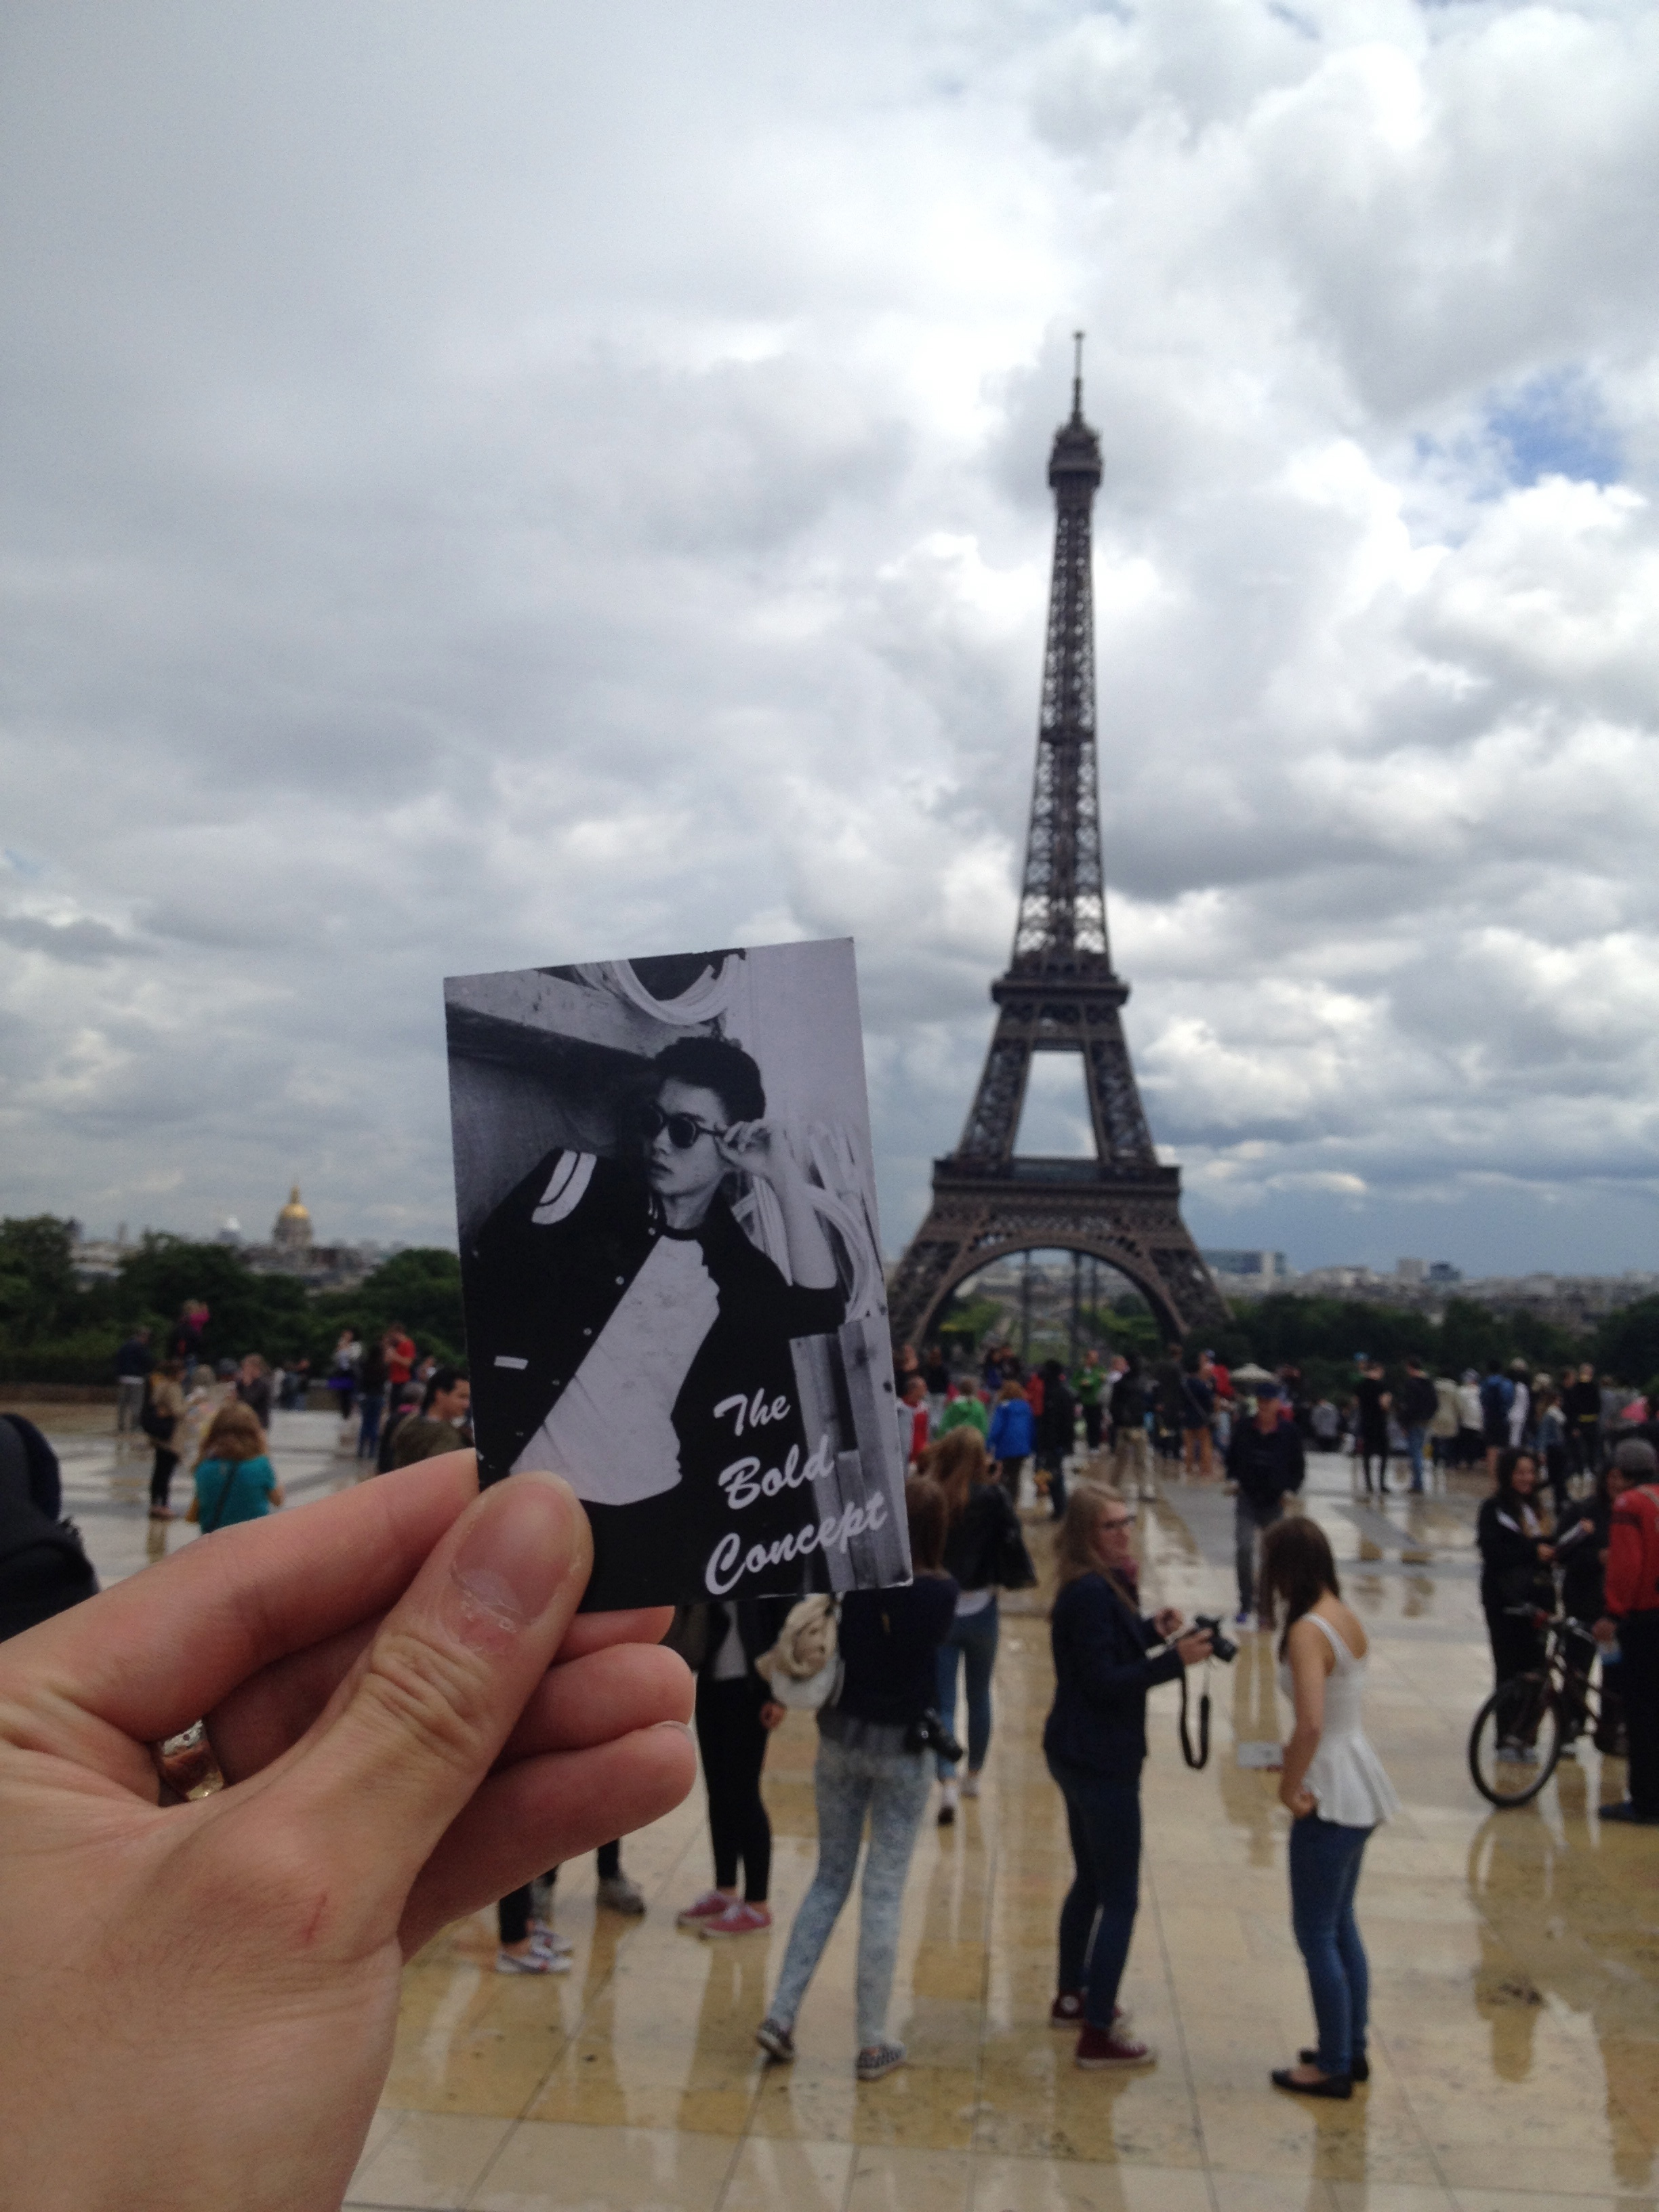 #theboldconcept has made it to Paris